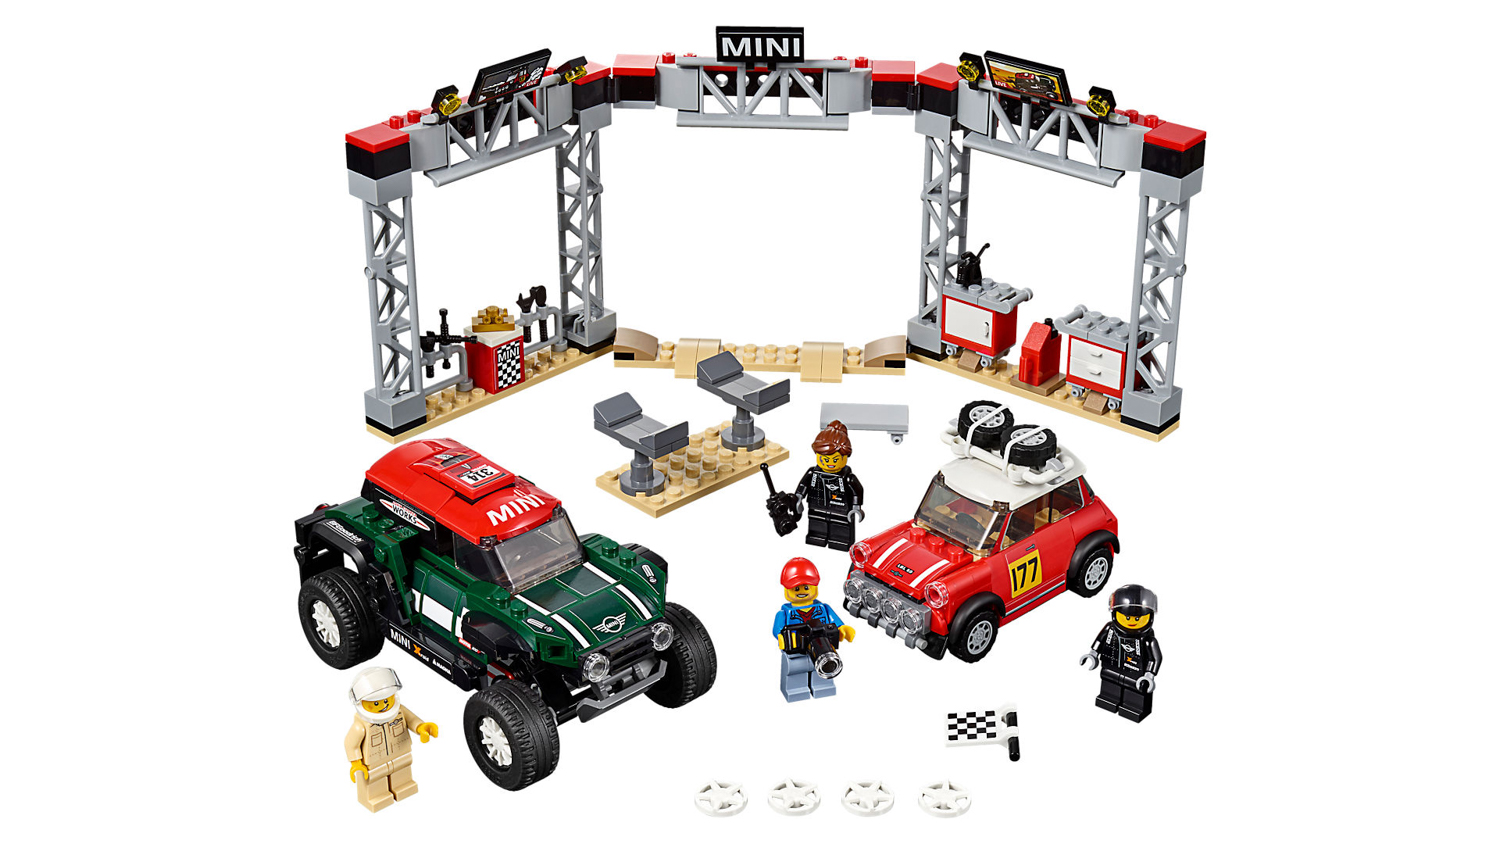 LEGO Ferrari F40, classic rally Mini and other awesome kits for 2019 thumbnail